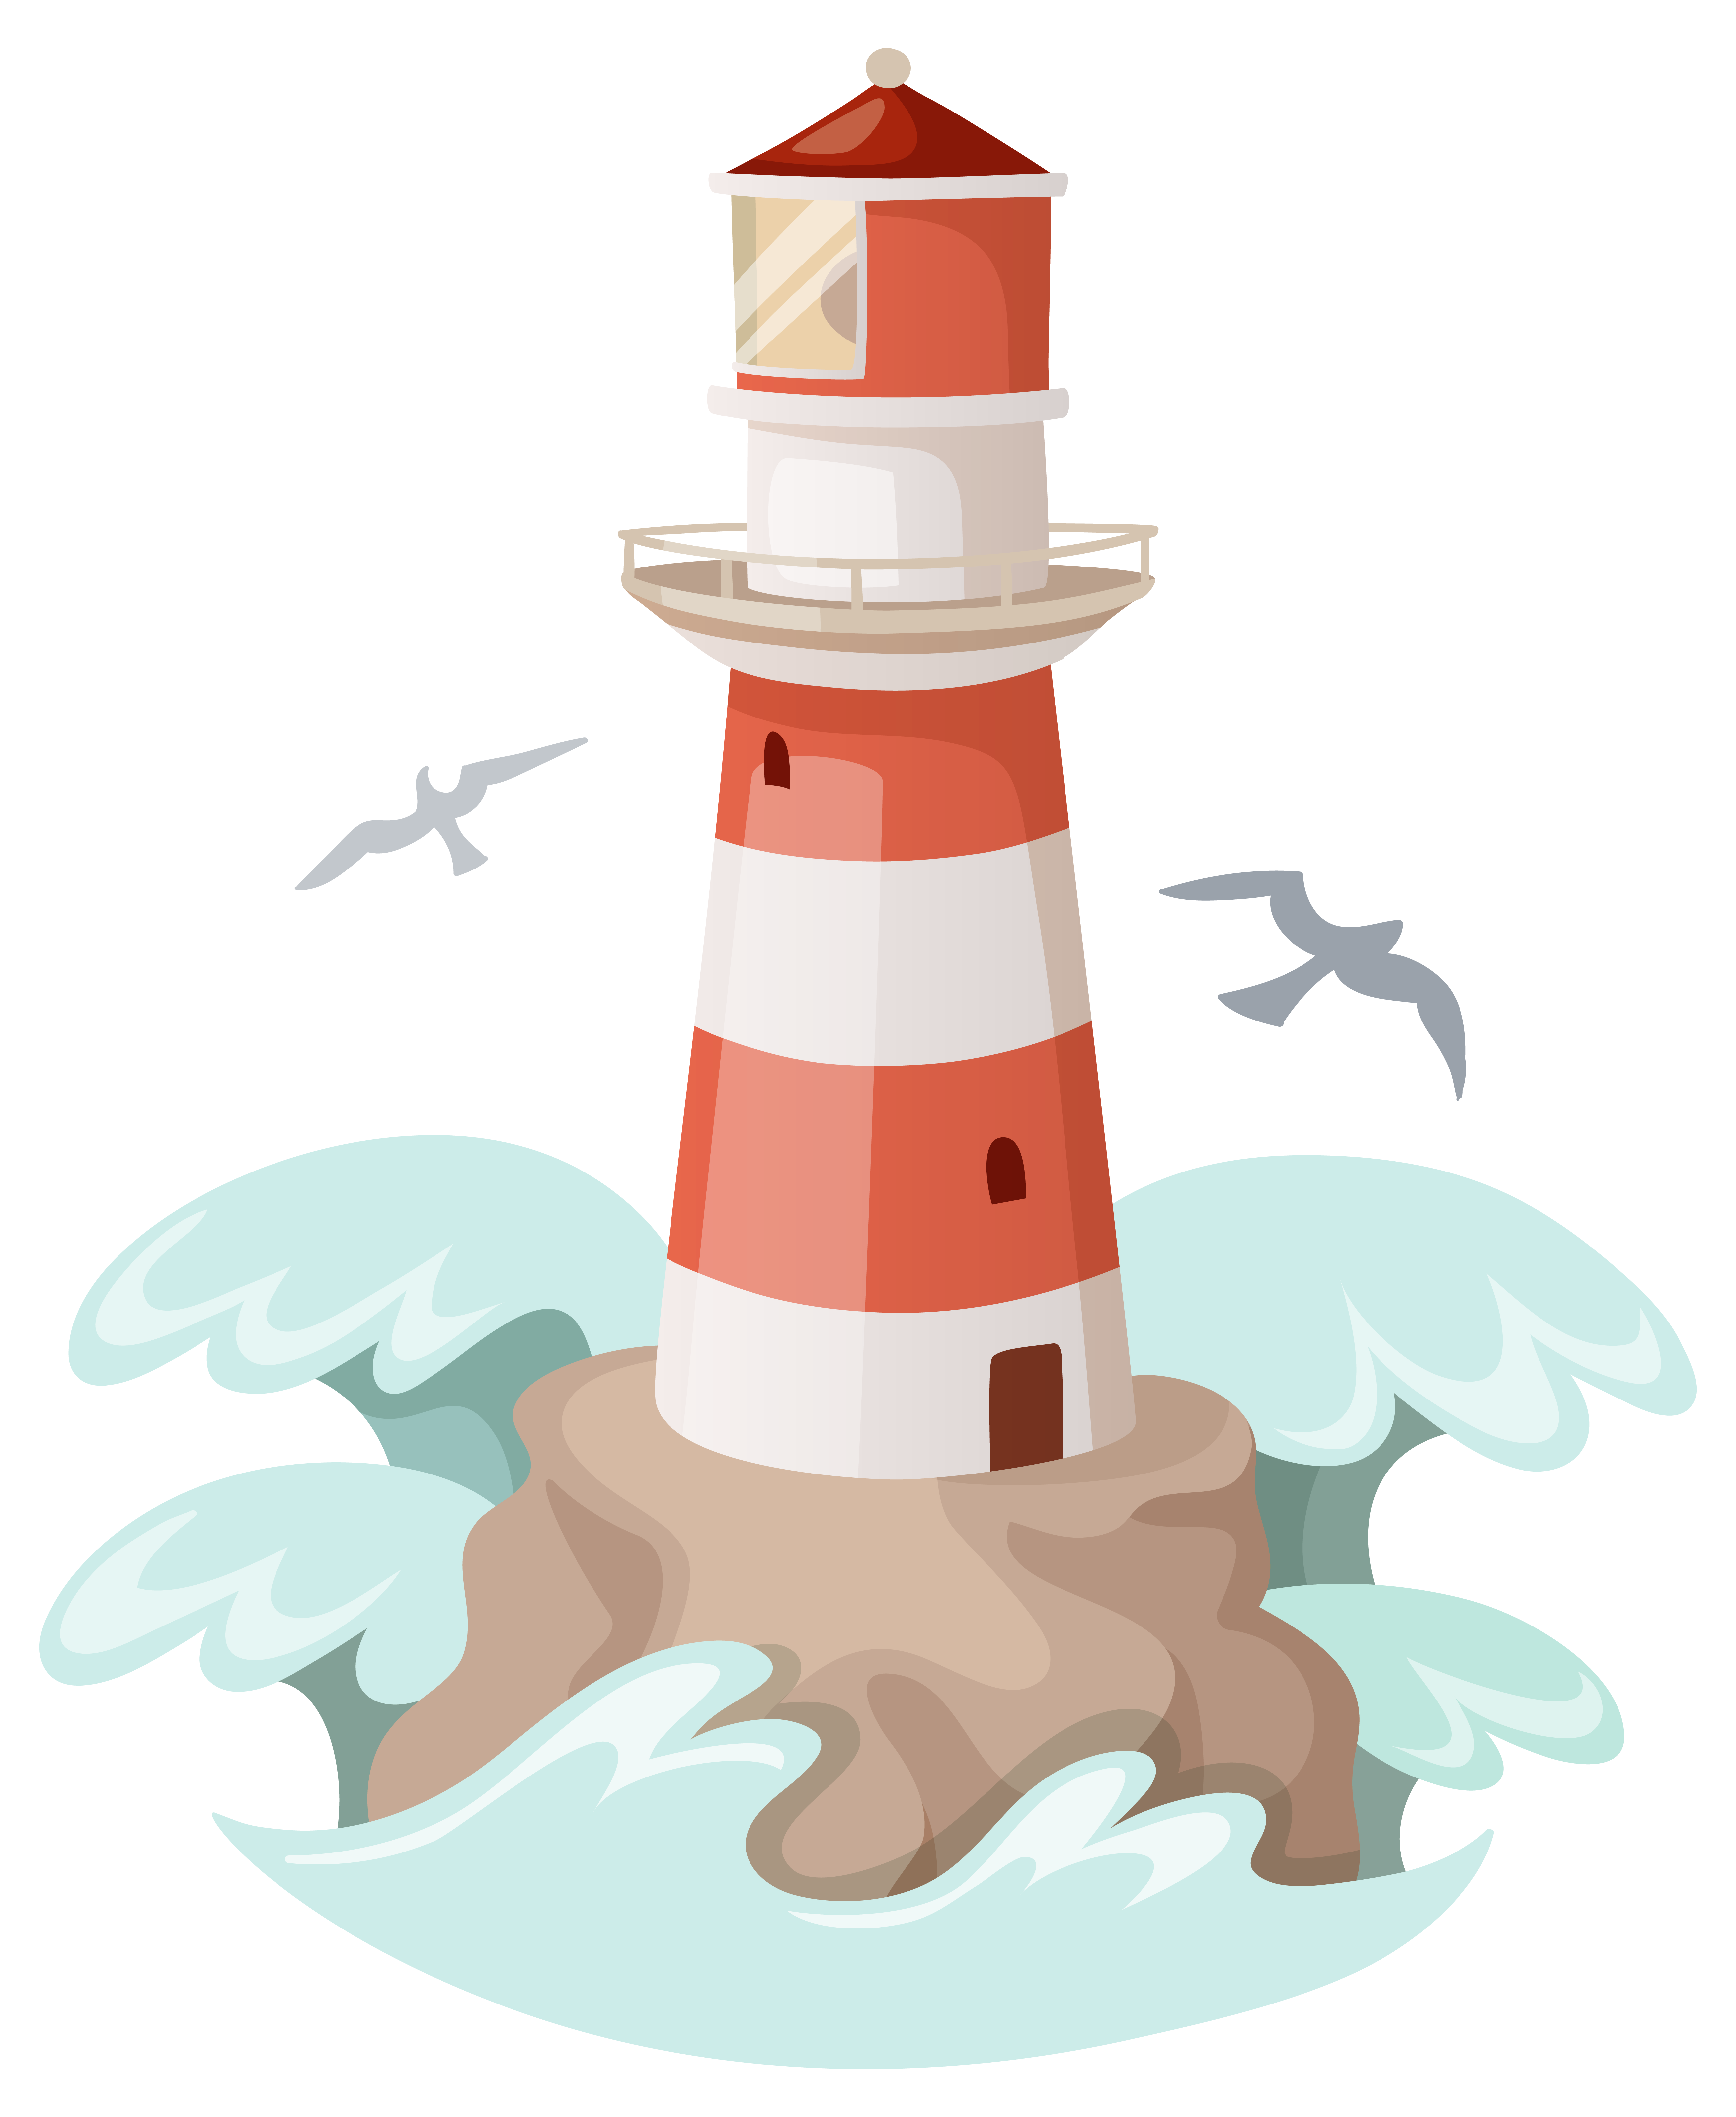 Lighthouse clipart image